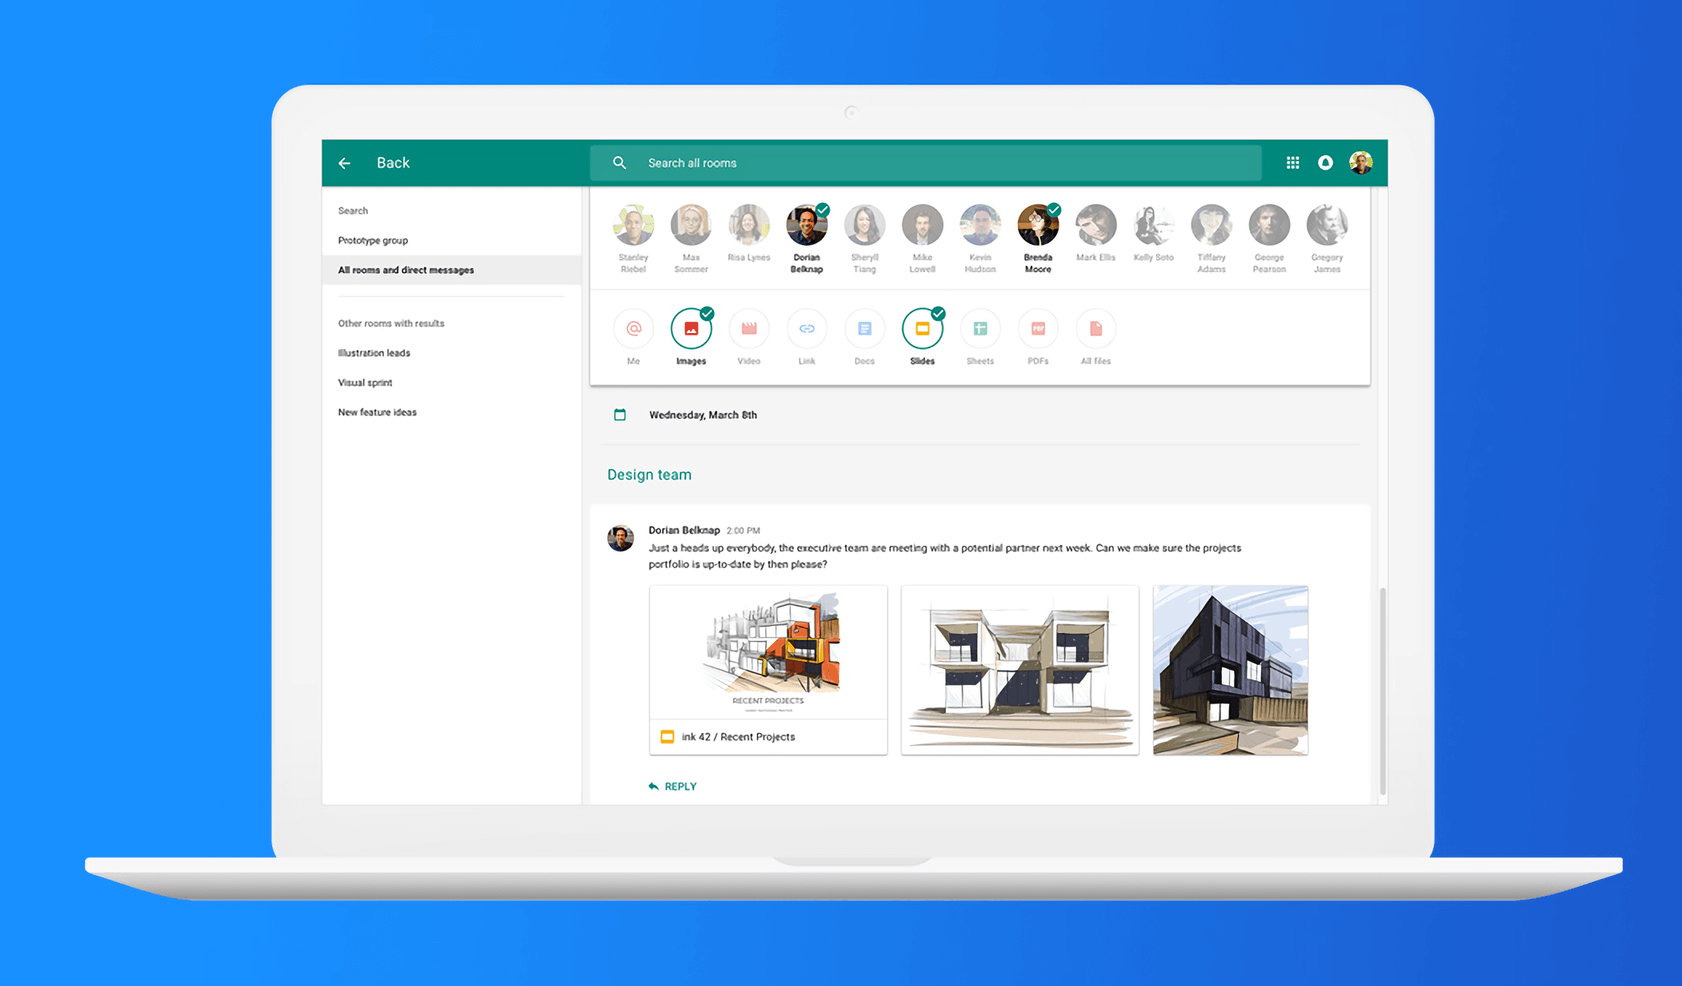 Google Hangouts to be officially retired in October